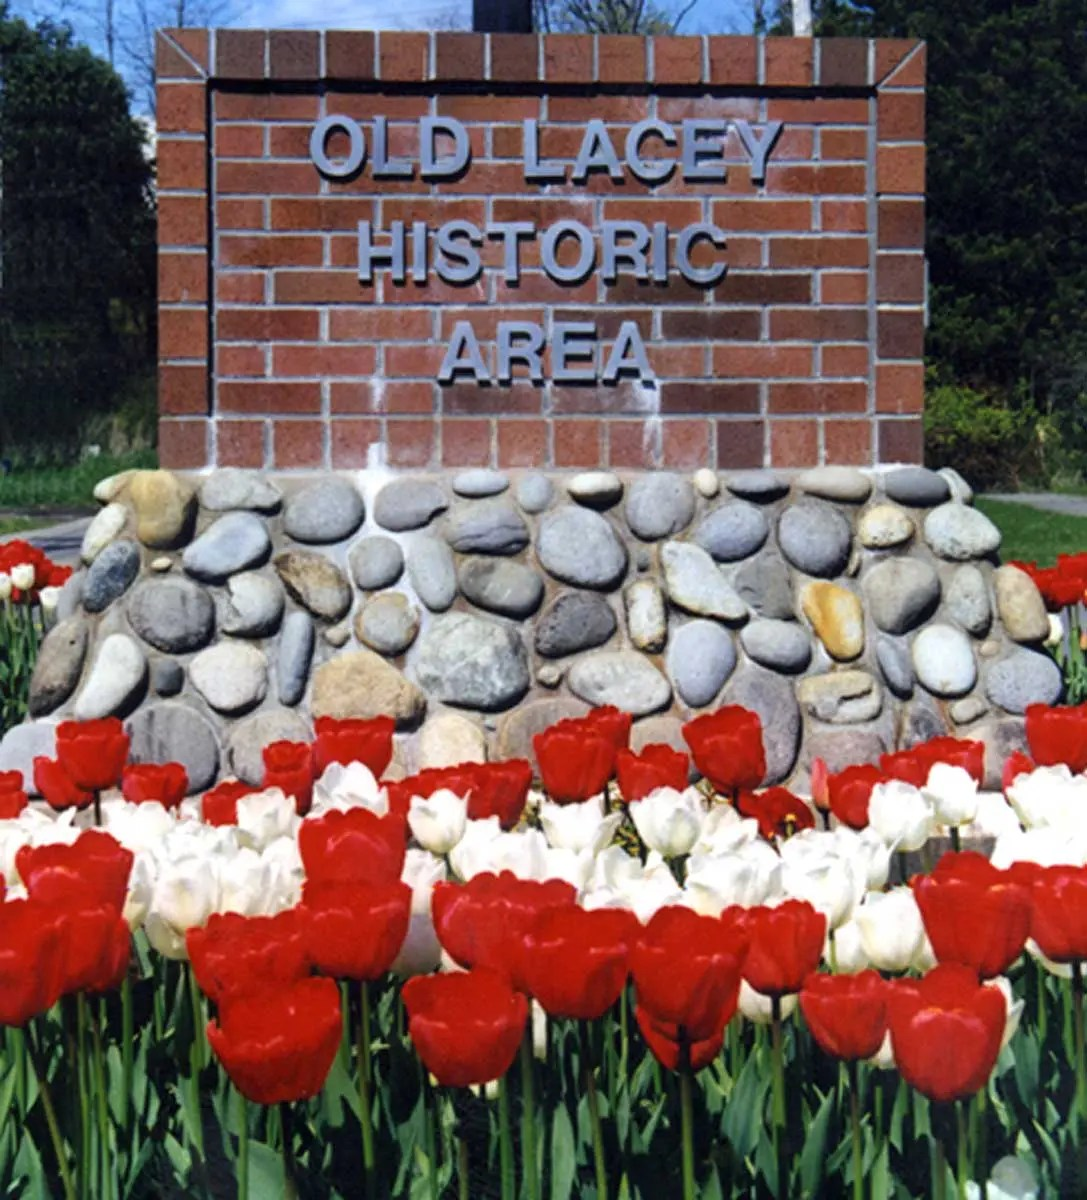 Old Lacey Historic Area